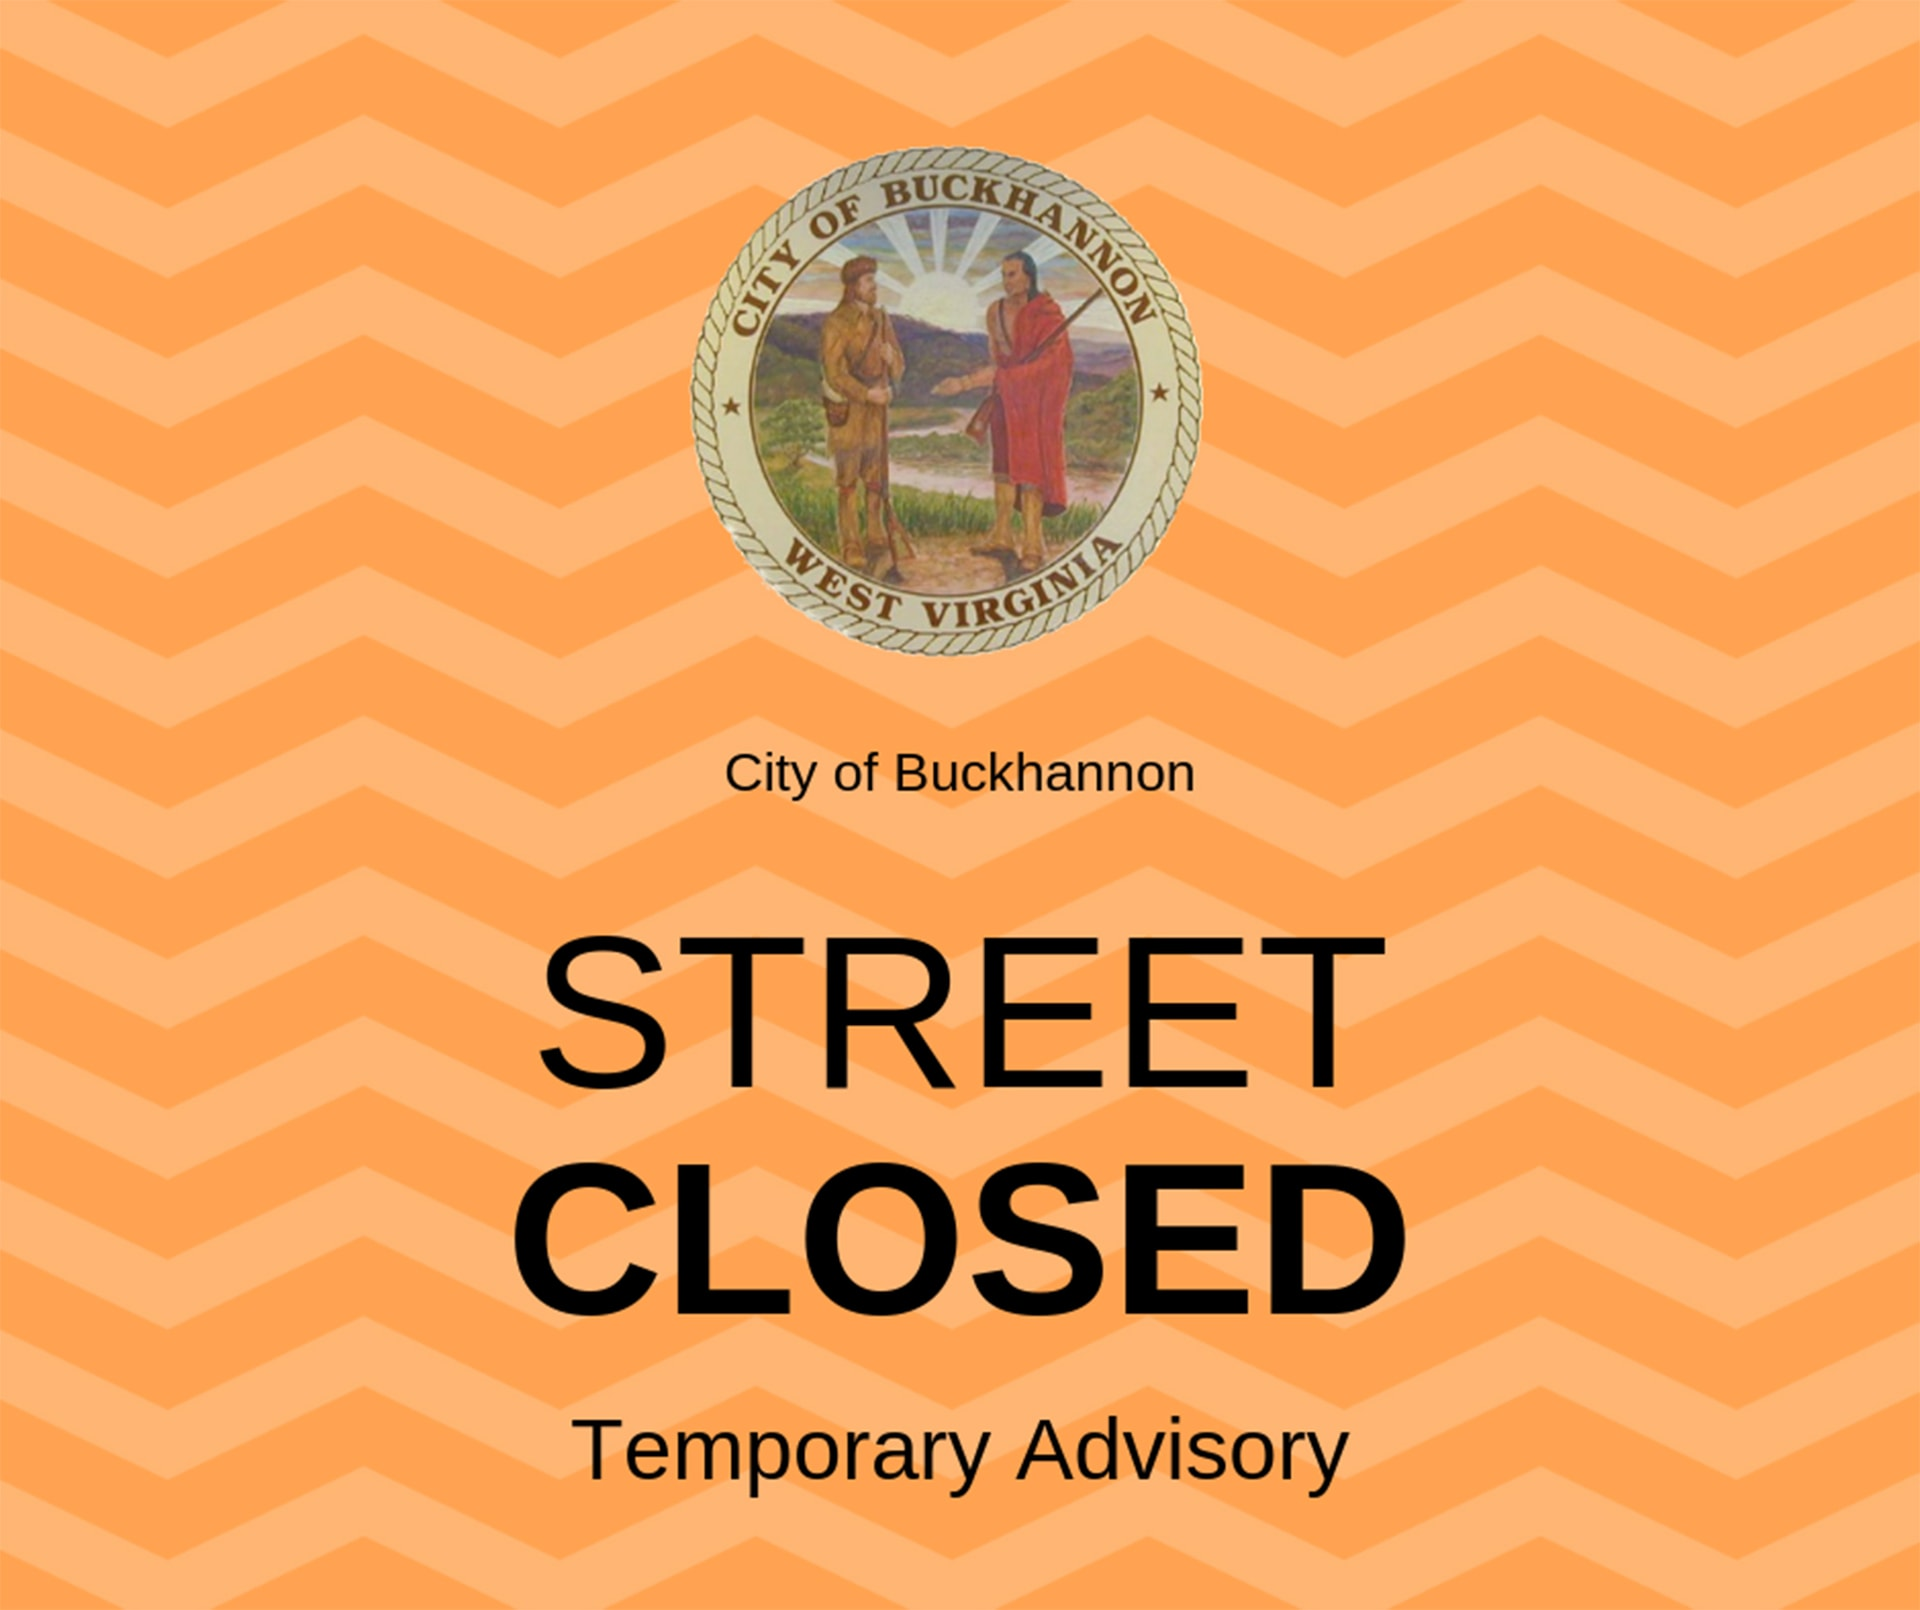 Street Closure: North Spring Street from East Main Street to Chase Bank Alley to be closed all week